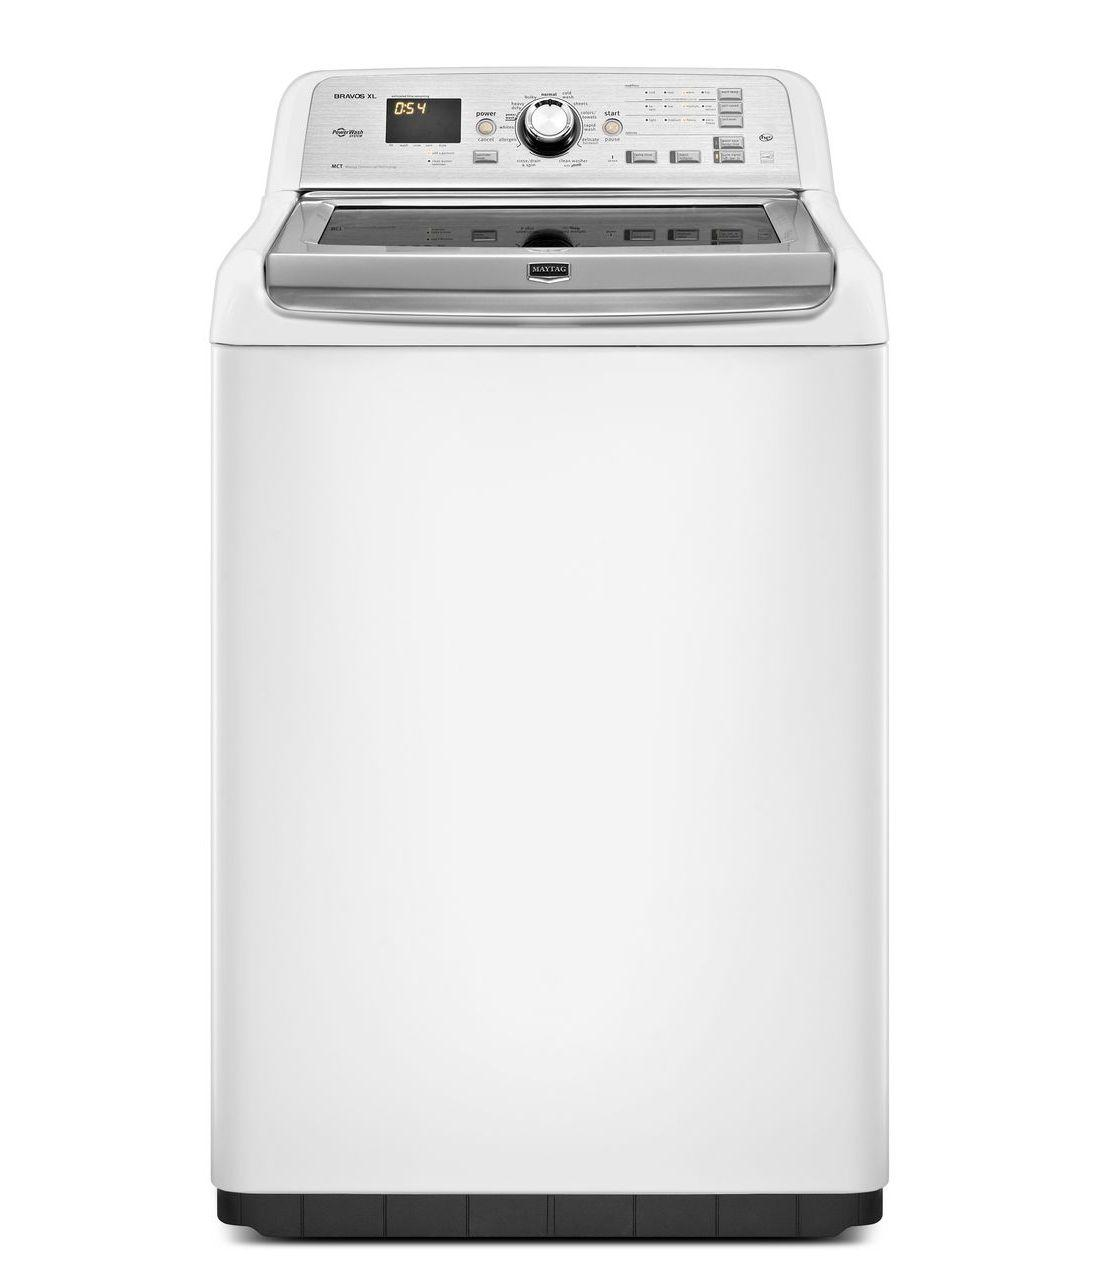 Maytag Mvwb880bw 28 Quot Top Load Washer With 4 8 Cu Ft